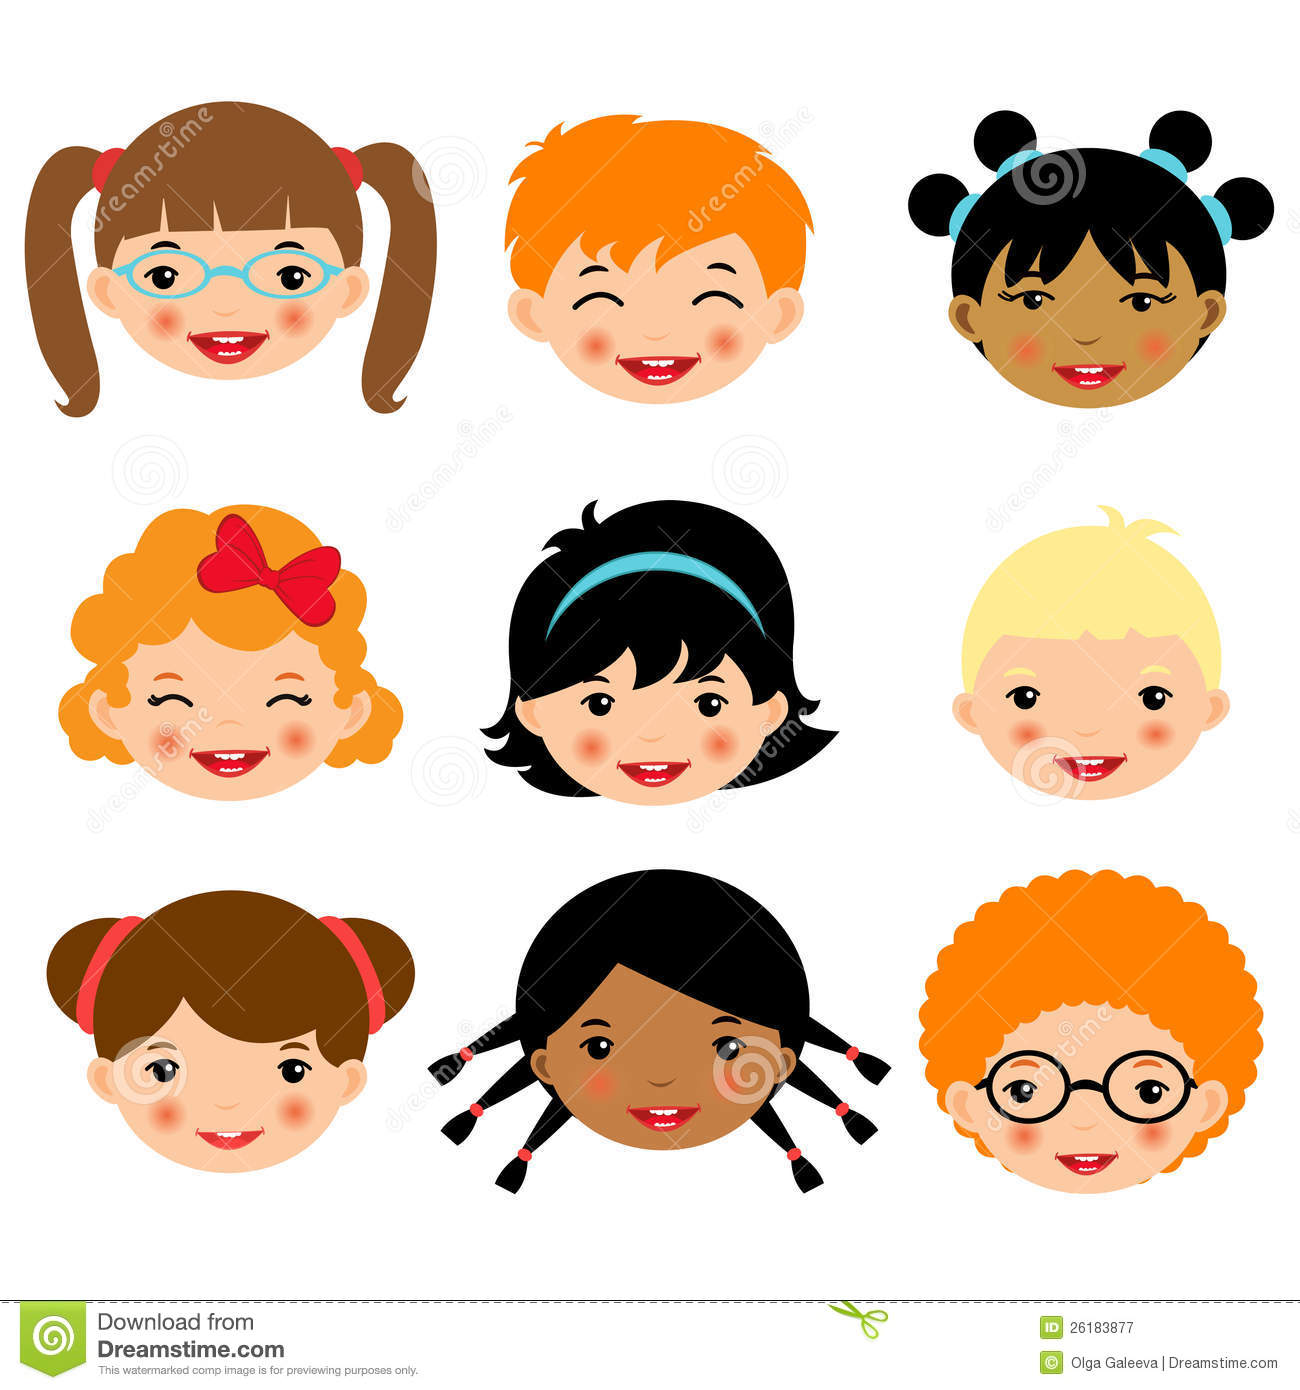 115429 Kids free clipart.